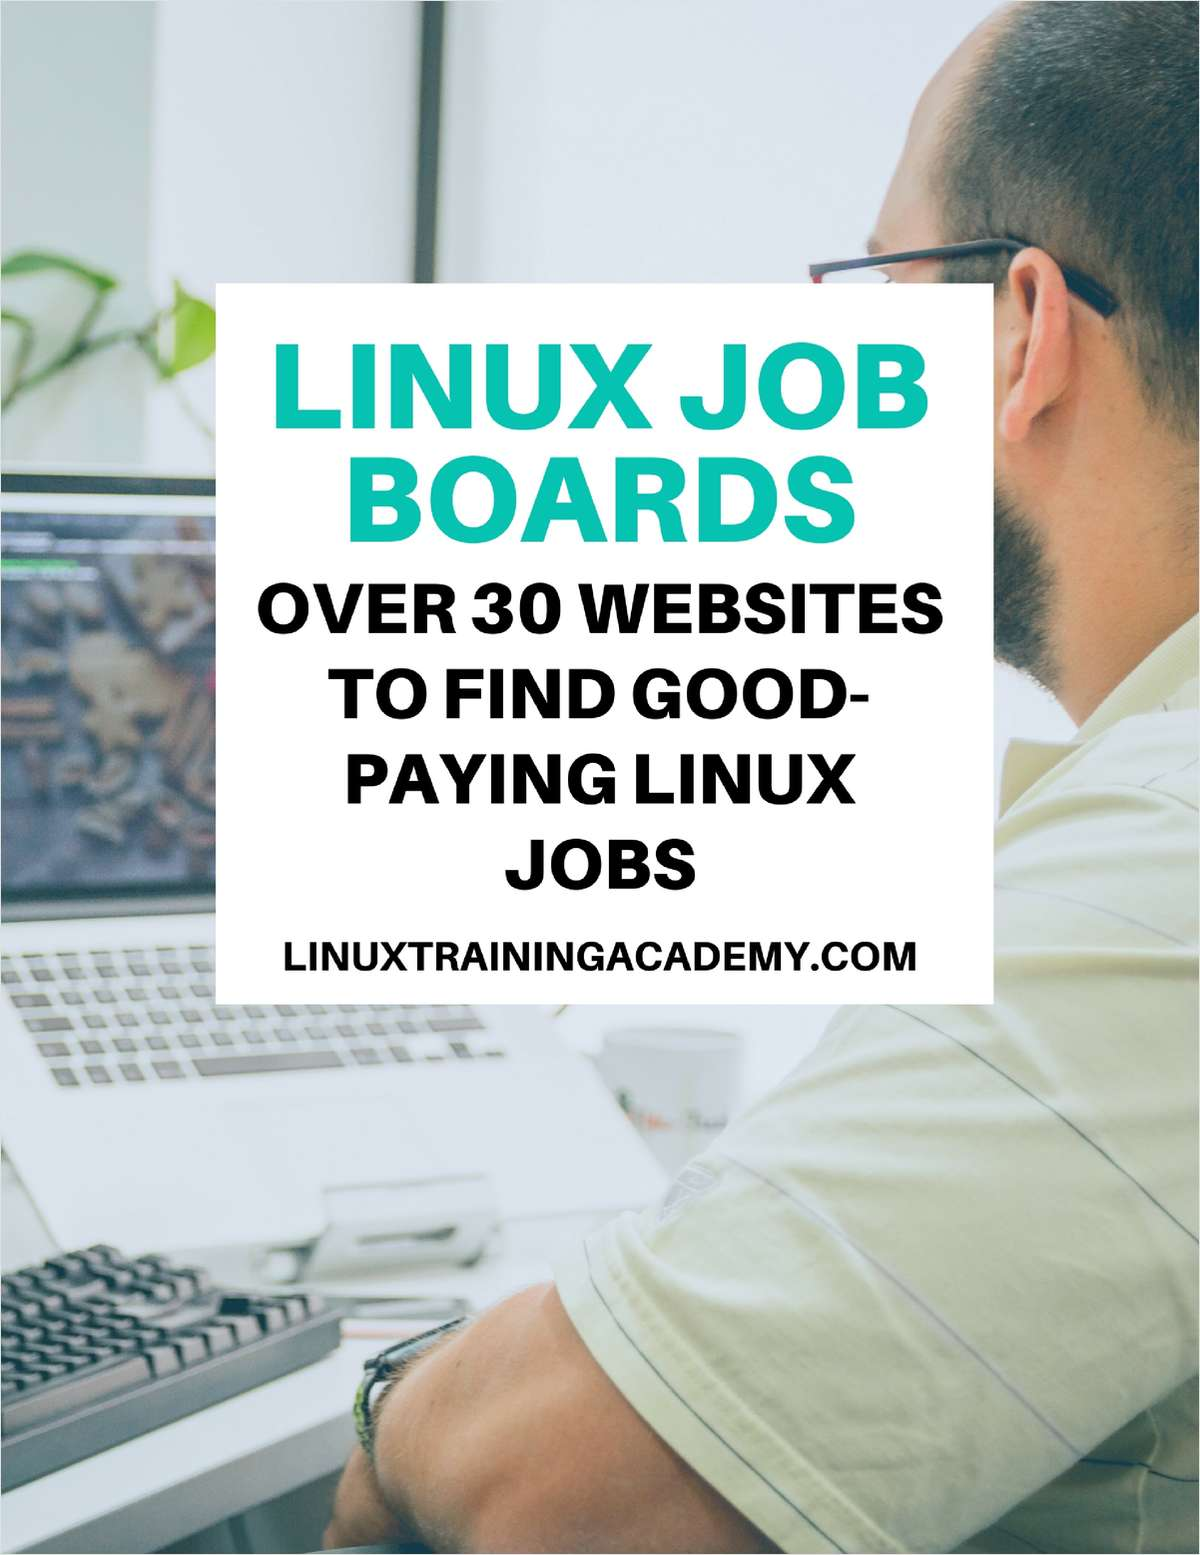 Linux Job Boards - Over 30 Websites to Find Good-Paying Linux Jobs